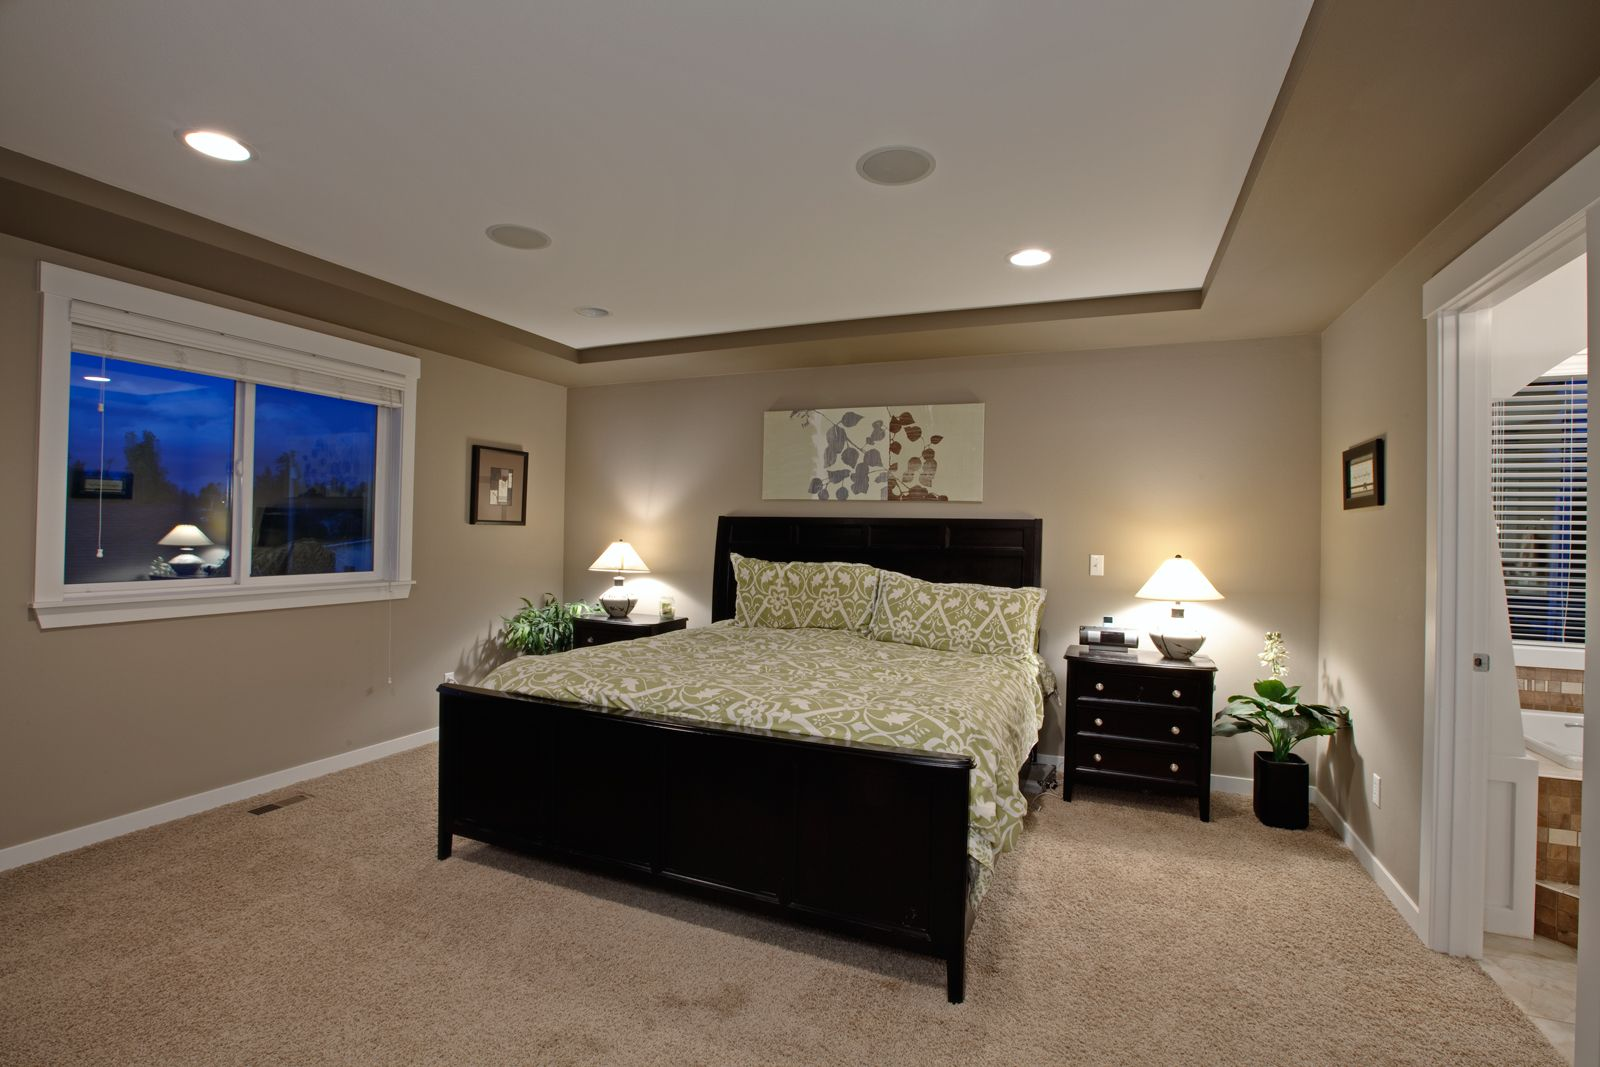 bedroom speakers. Master bedroom with an two toned drop ceiling  speakers can lights and white painted millwork